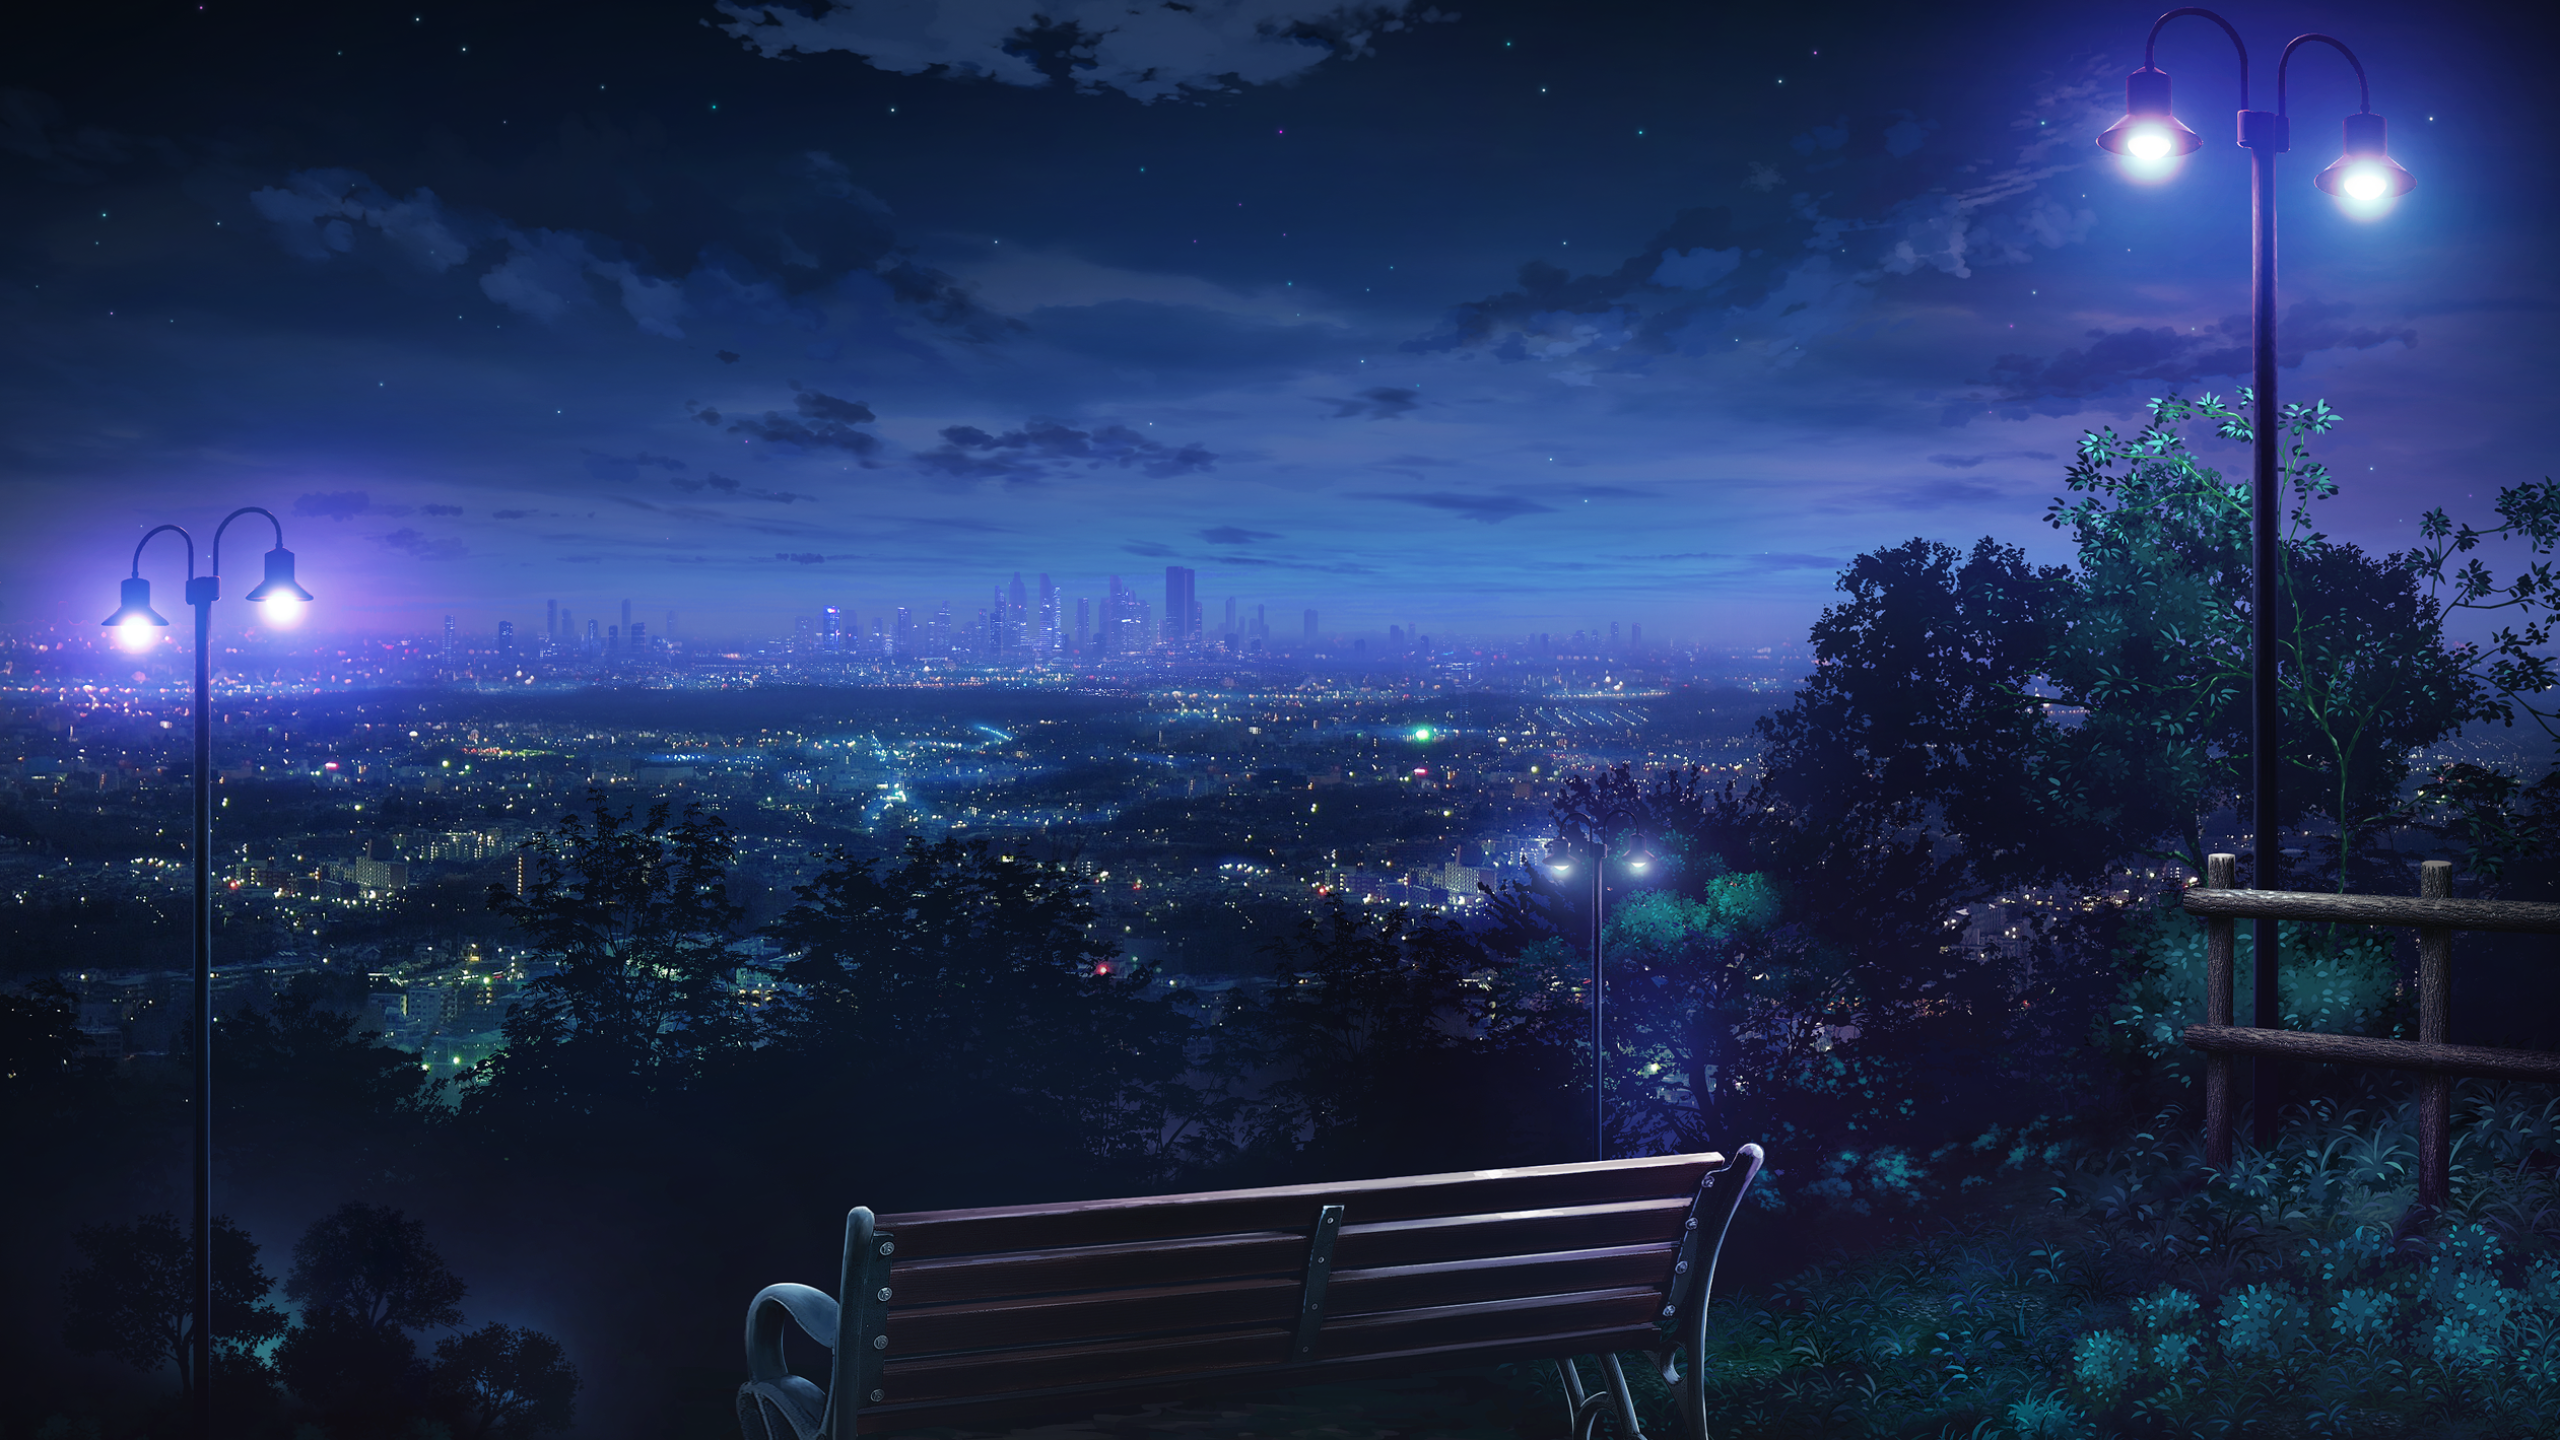 No Need To Hurry This Night 1920x1080 R Wallpapers Night Scenery Anime Scenery Scenery Wallpaper